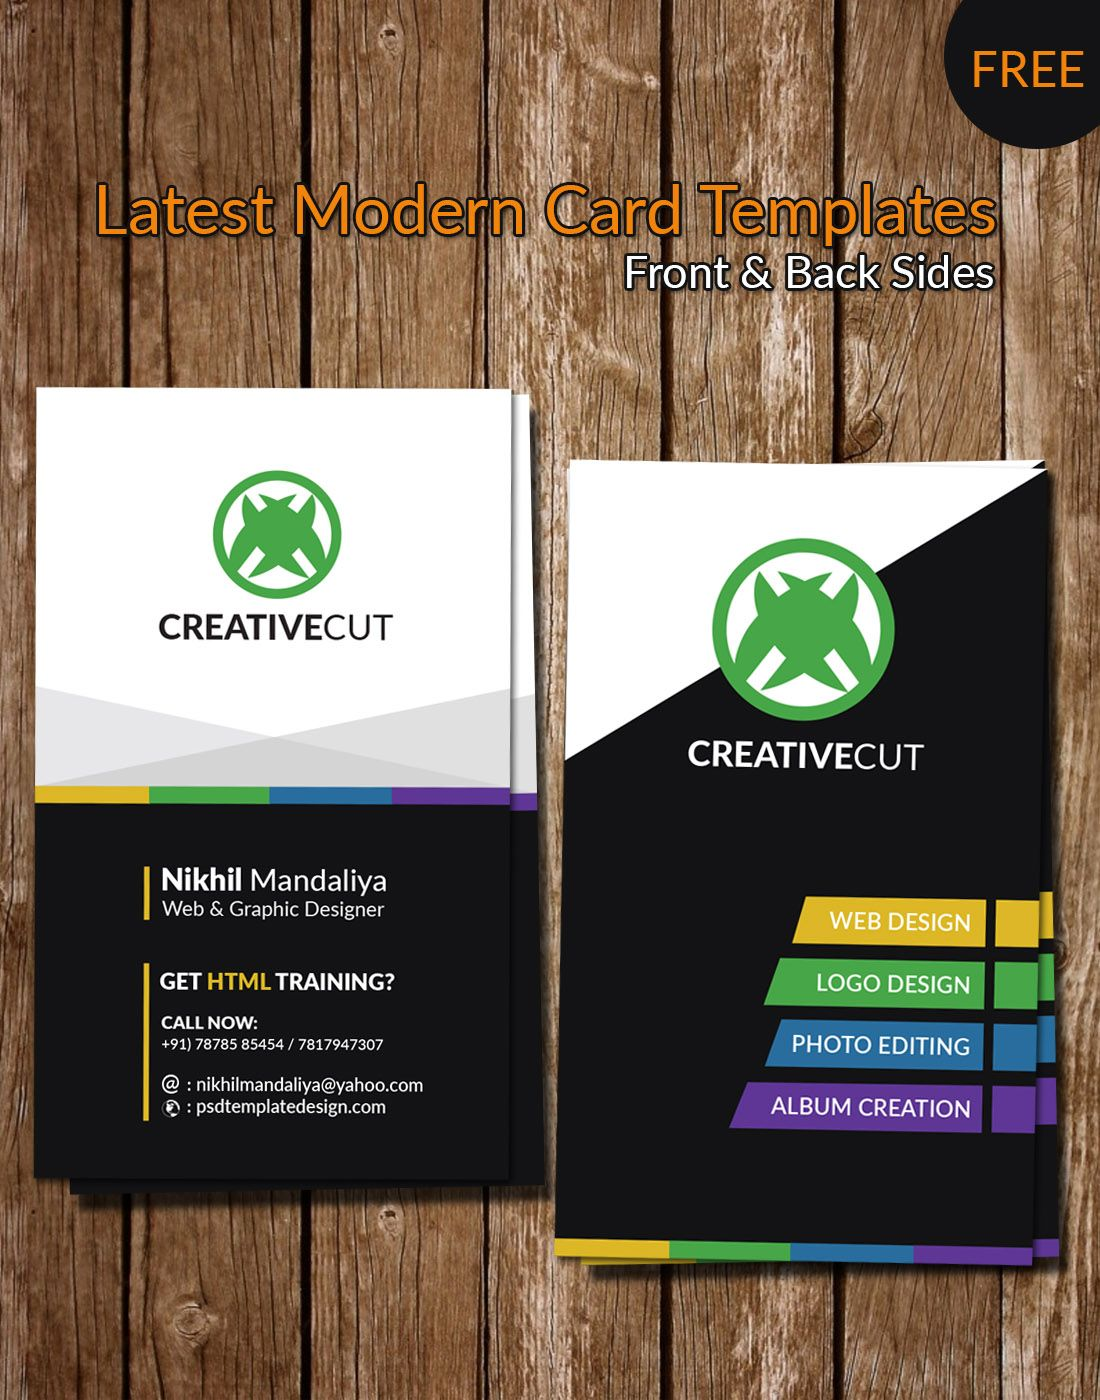 Modern card more at designresources free business card creative business card templatesfree card for all user latest design template for card and psd templates website templates accmission Image collections